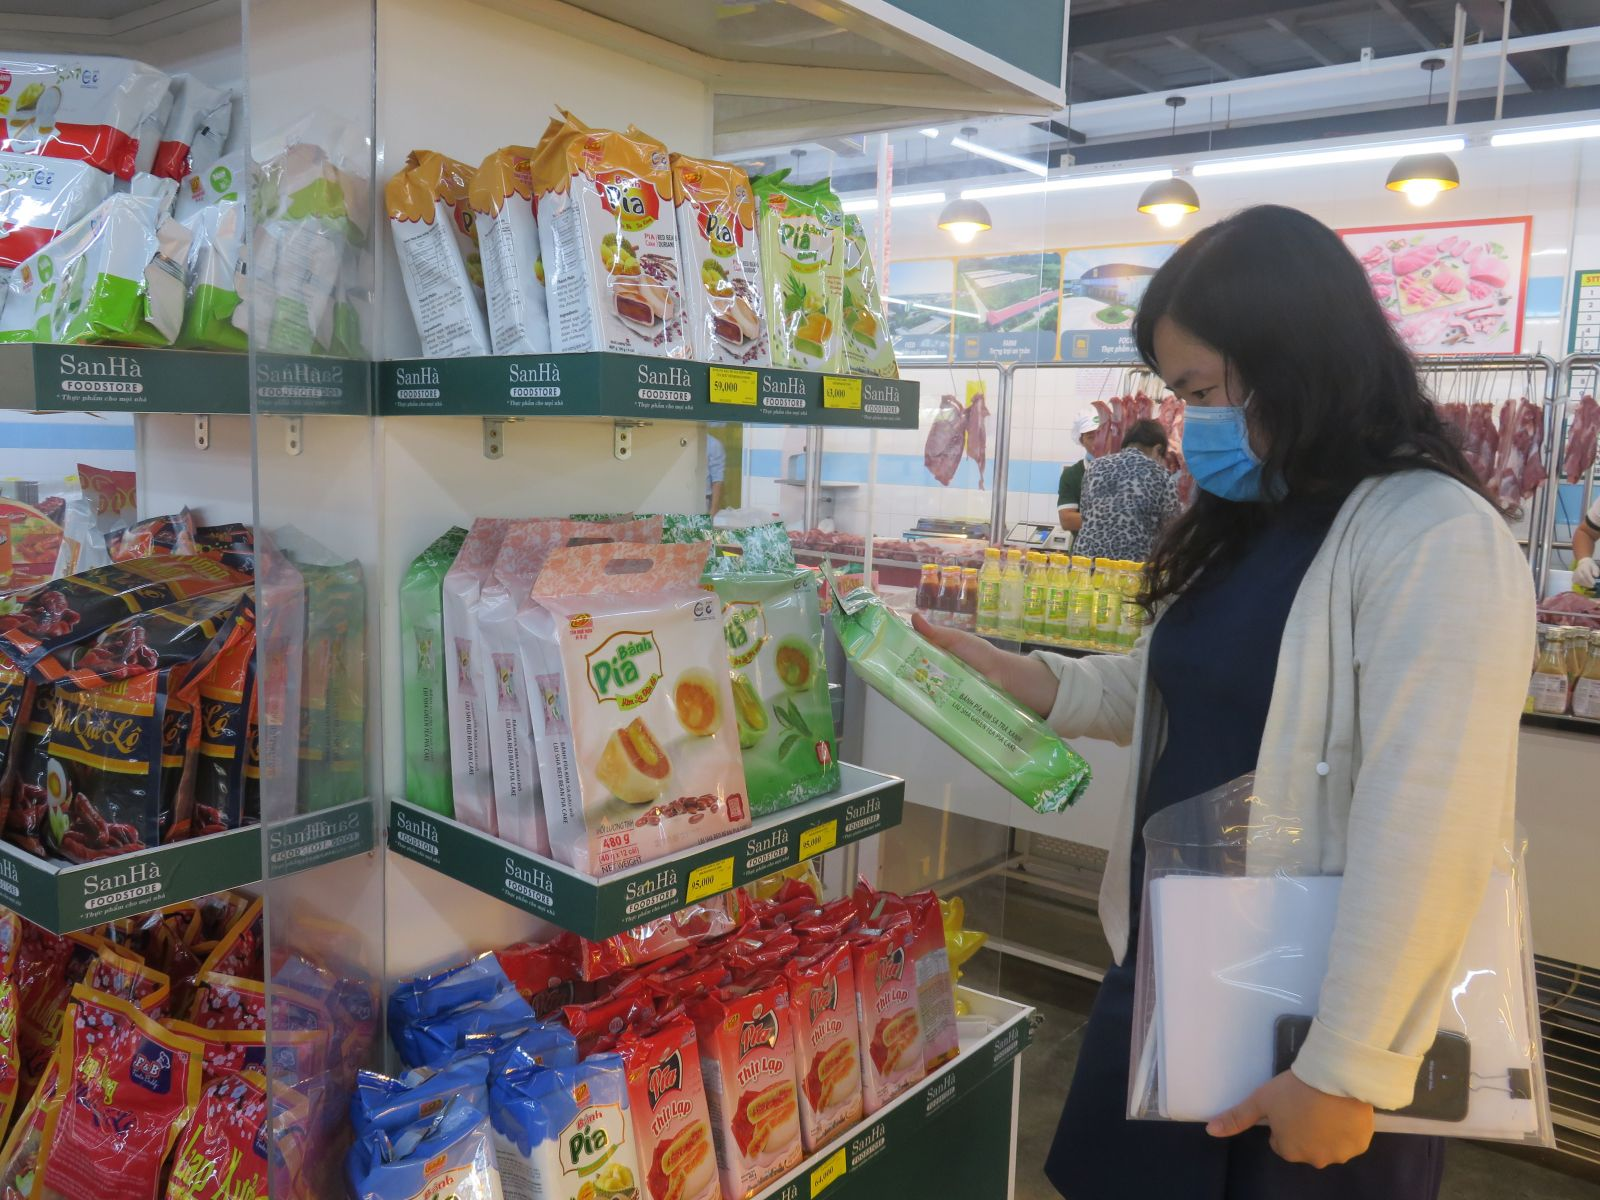 Goods for Tet and Vietnamese goods dominate at shops and supermarkets